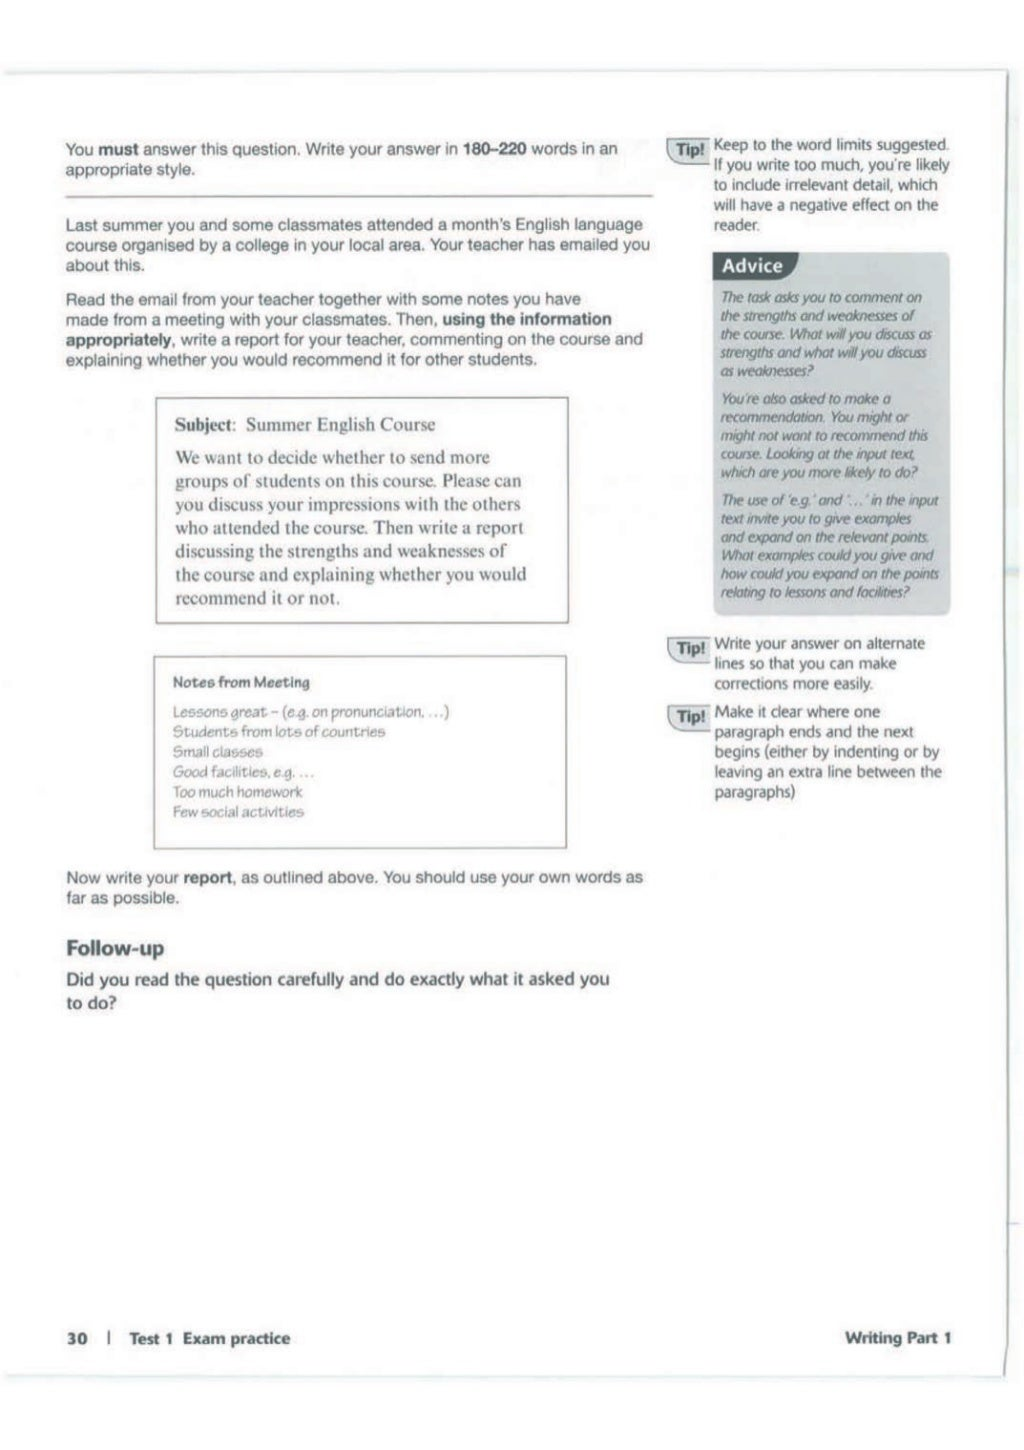 Advanced trainer 6 practice tests with answers book4joy (1) page 31